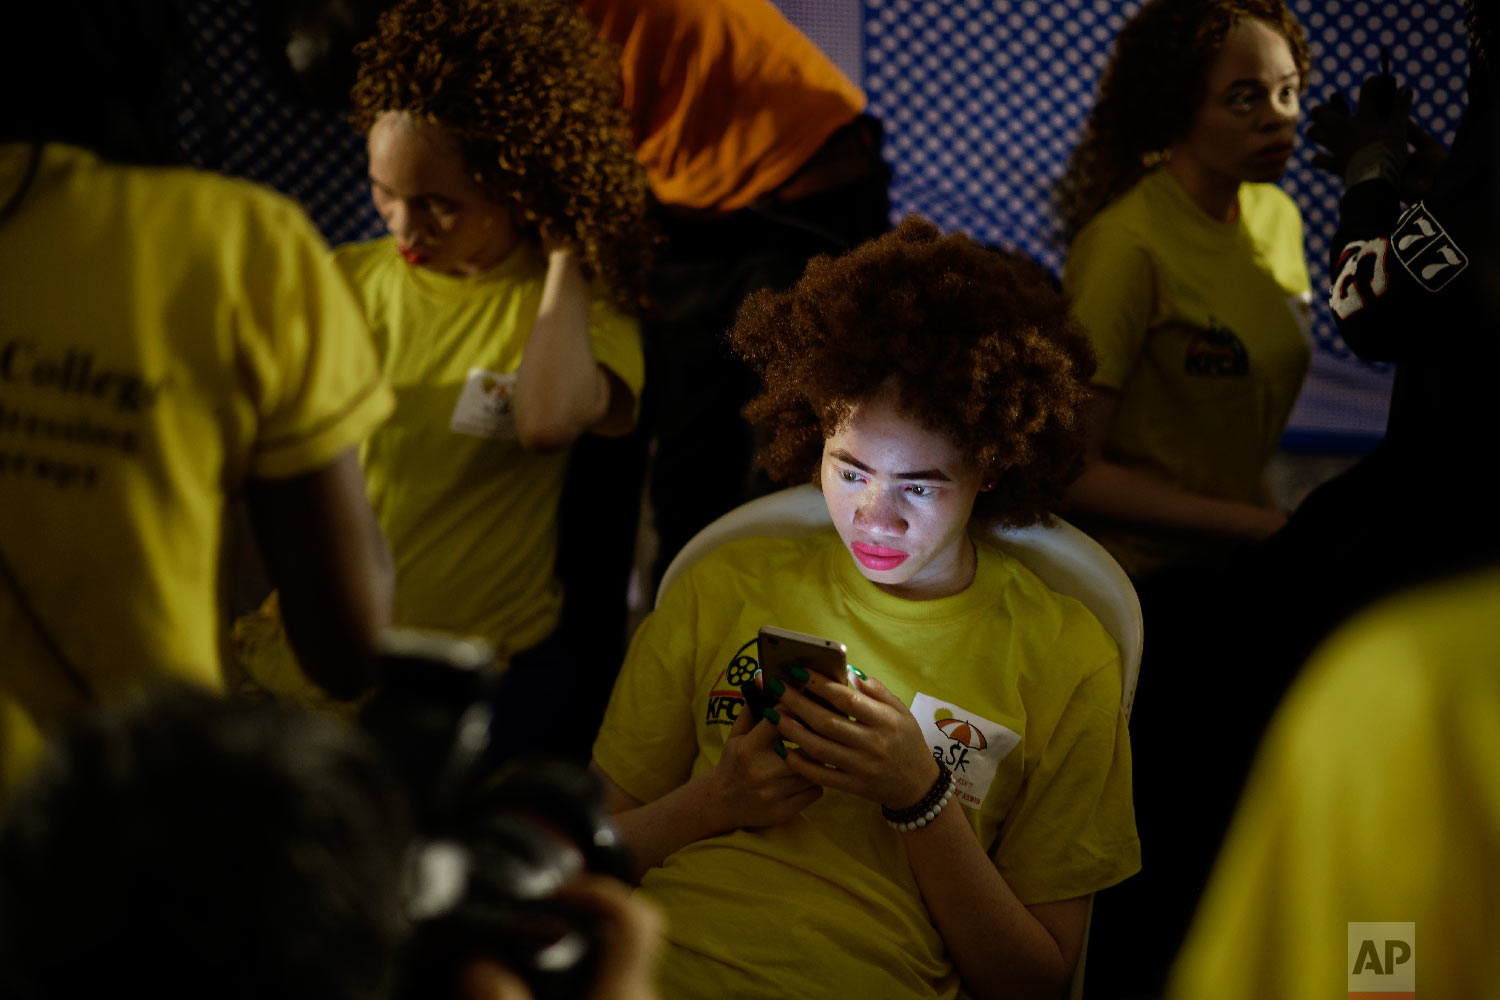 A contestant looks at her mobile phone after having her makeup done as she prepares for the start of the Mr. & Miss Albinism East Africa contest, organized by the Albinism Society of Kenya, in Nairobi, Kenya on Nov. 30, 2018. (AP Photo/Ben Curtis)